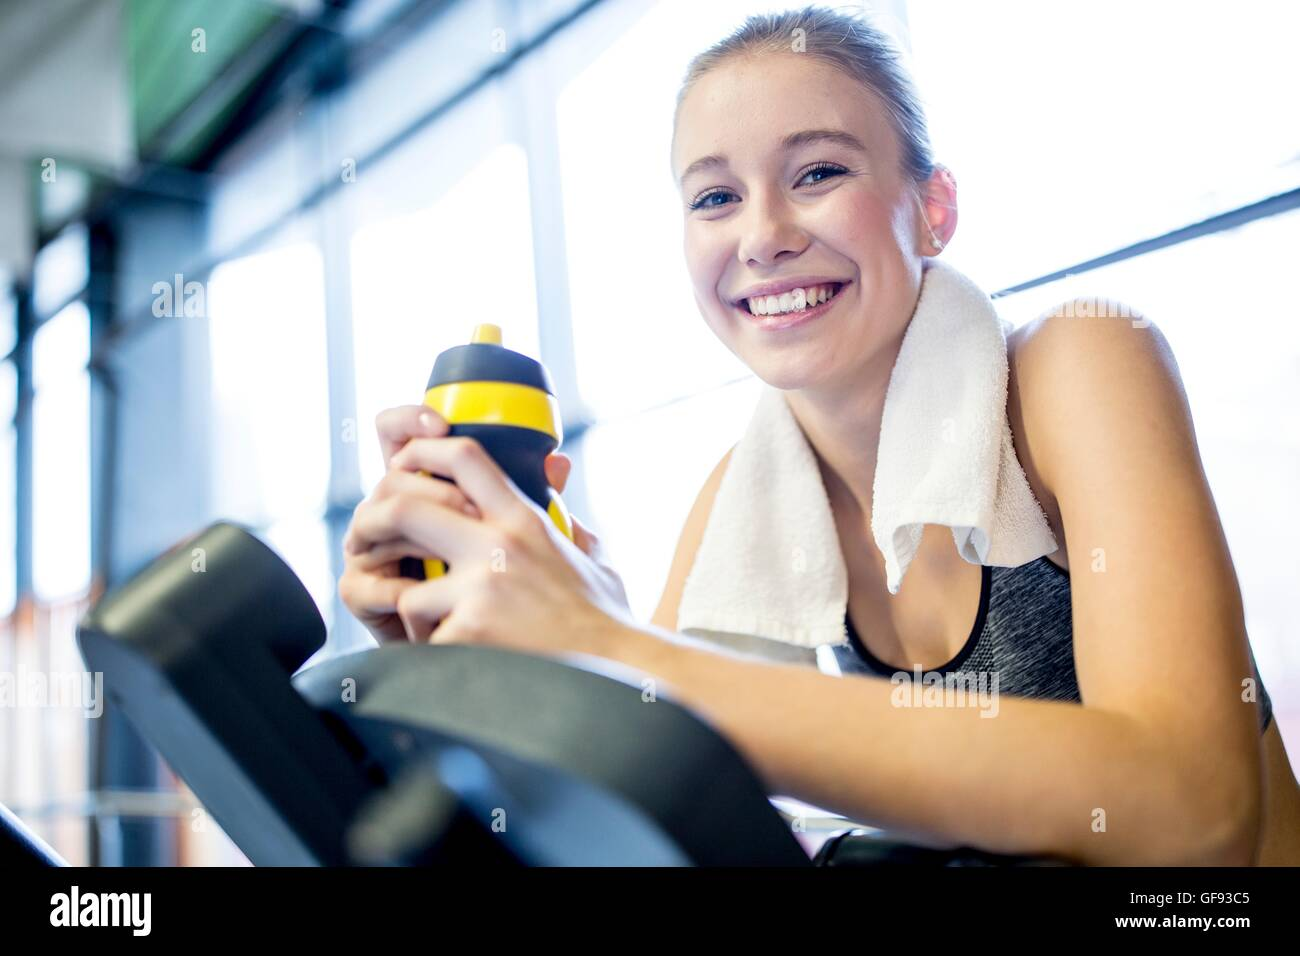 PROPERTY RELEASED. MODEL RELEASED. Young woman holding water bottle while working out in gym, smiling, portrait. - Stock Image